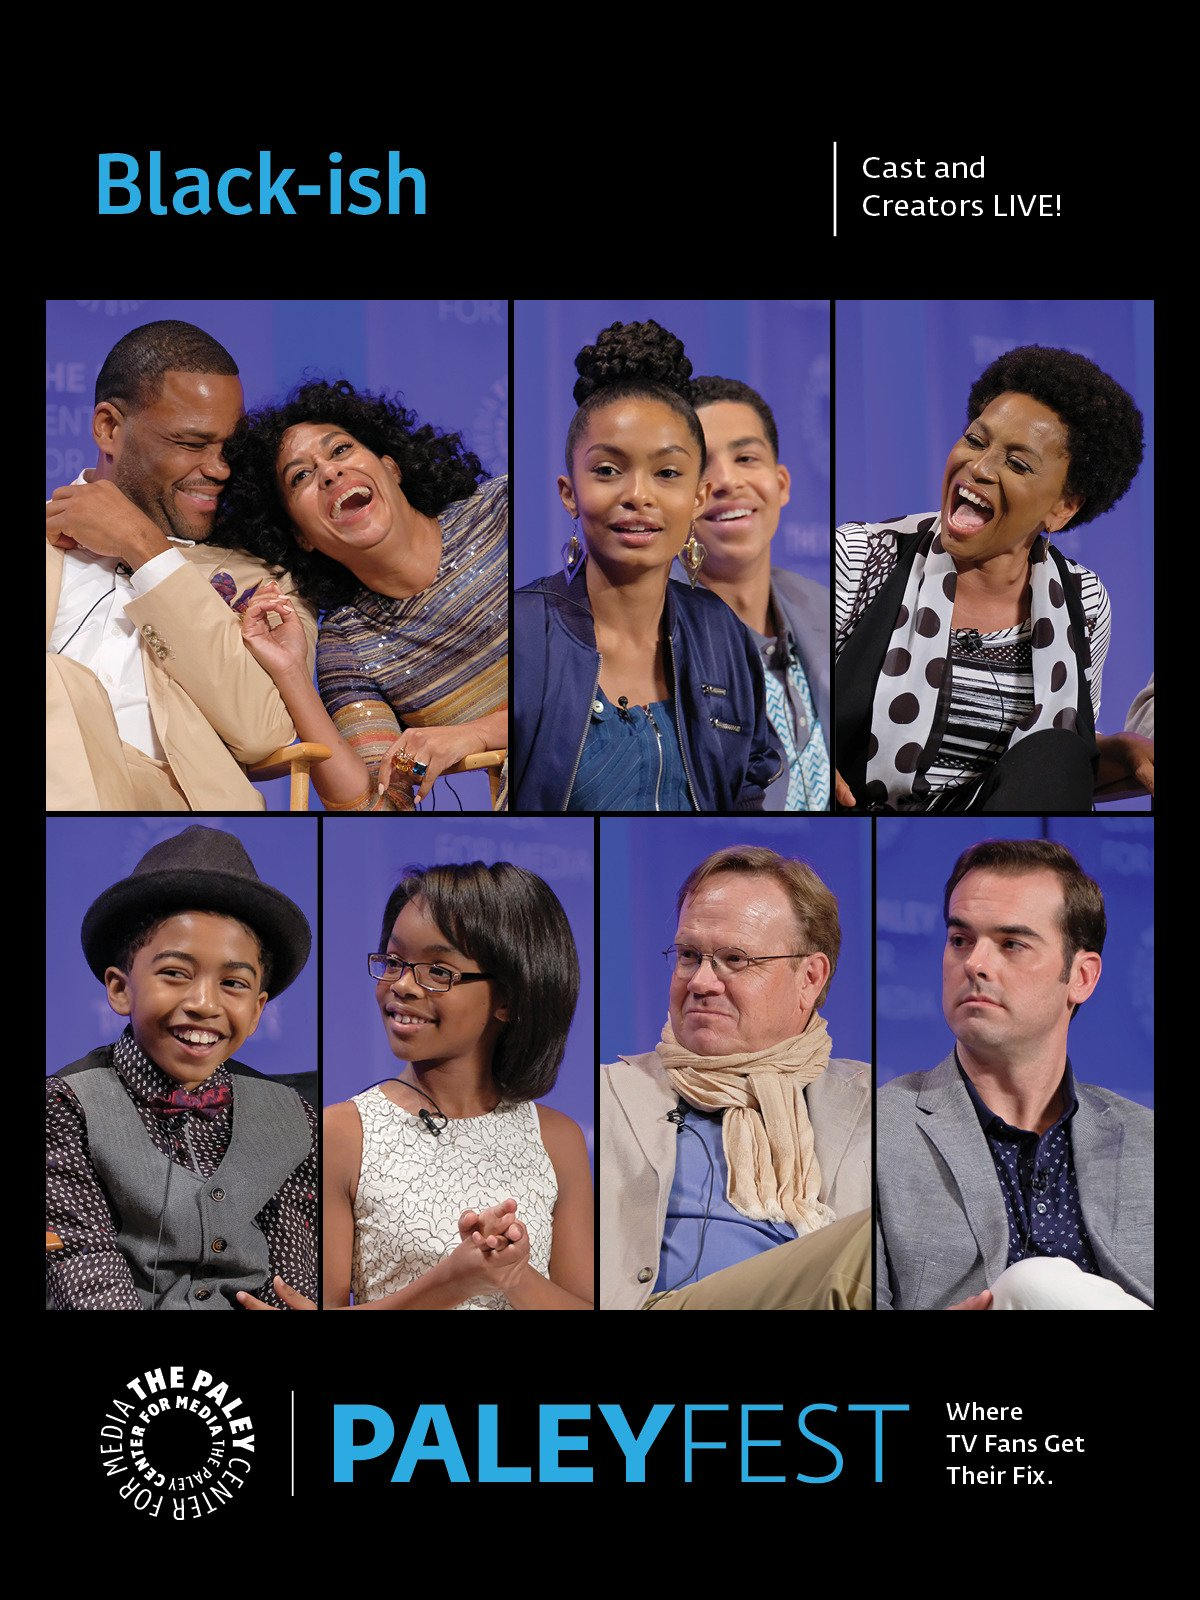 Black-ish: Cast and Creators PaleyFest